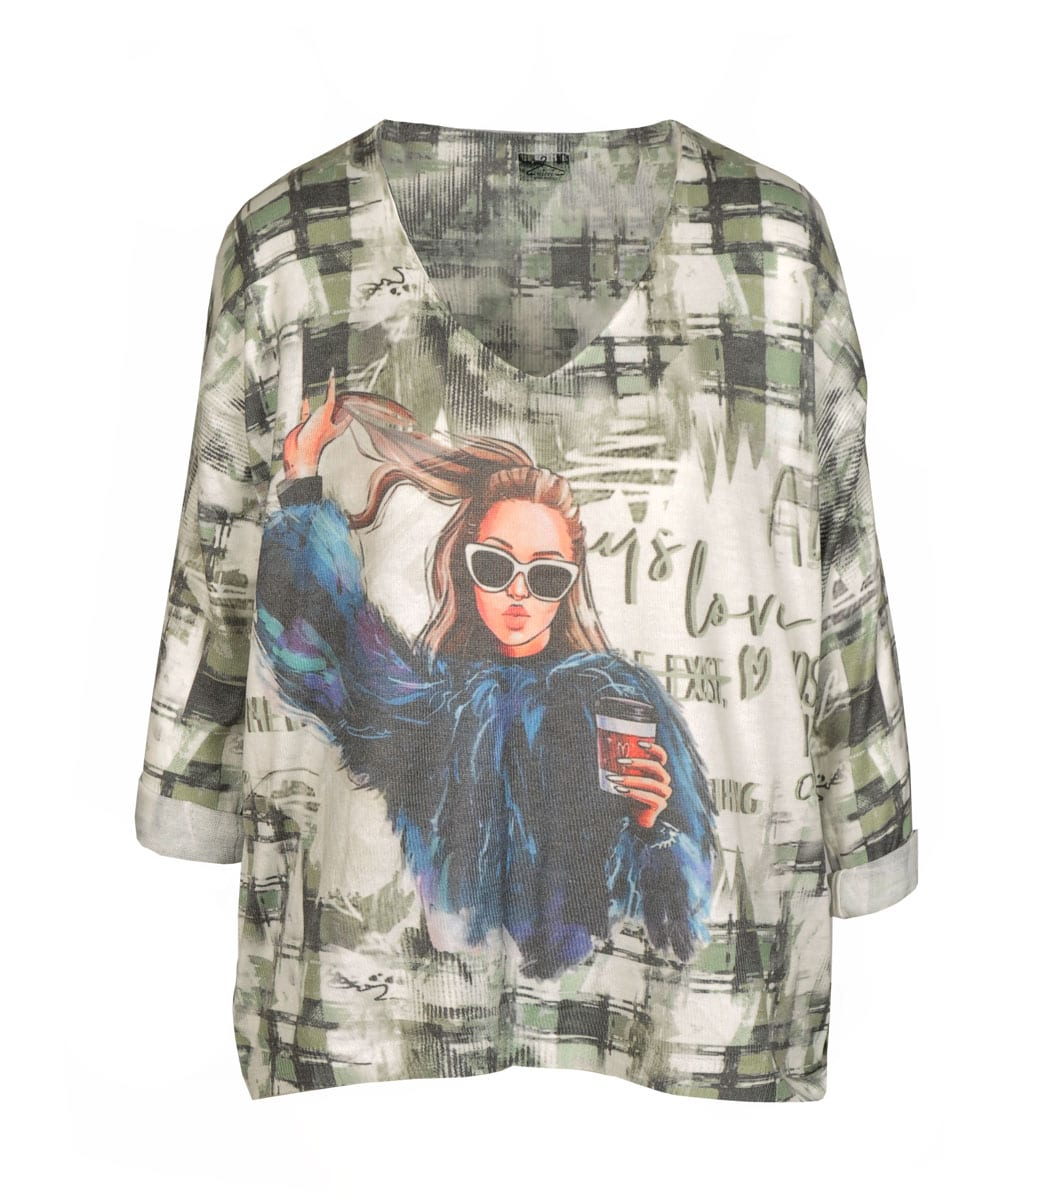 Sunglasses lady print knit top